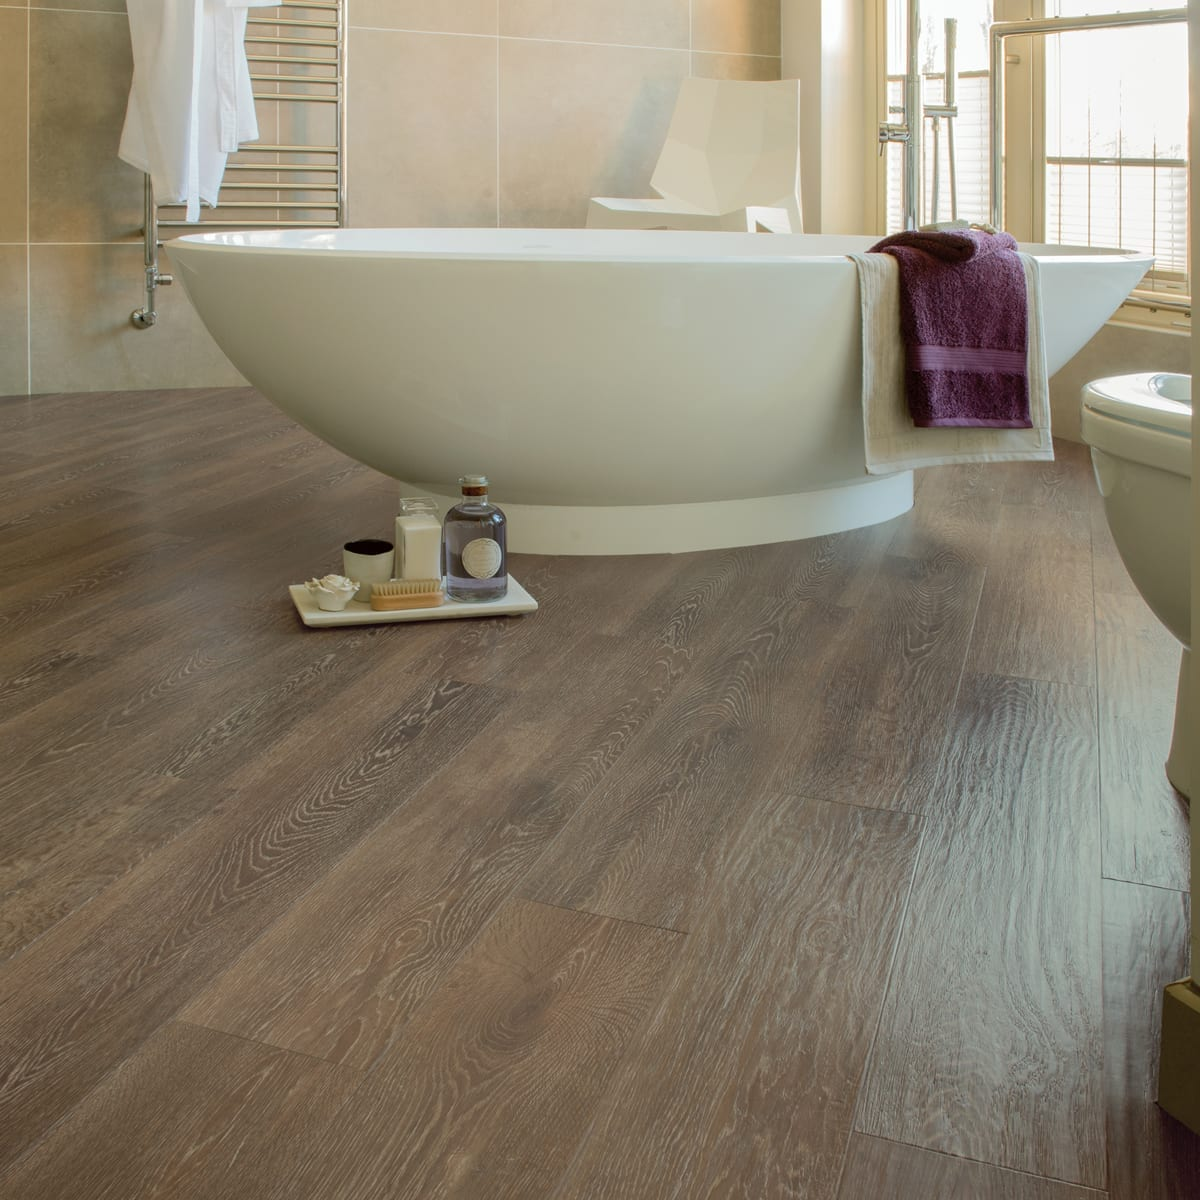 Carpet In A Bathroom: Karndean Art Select Oak Premier